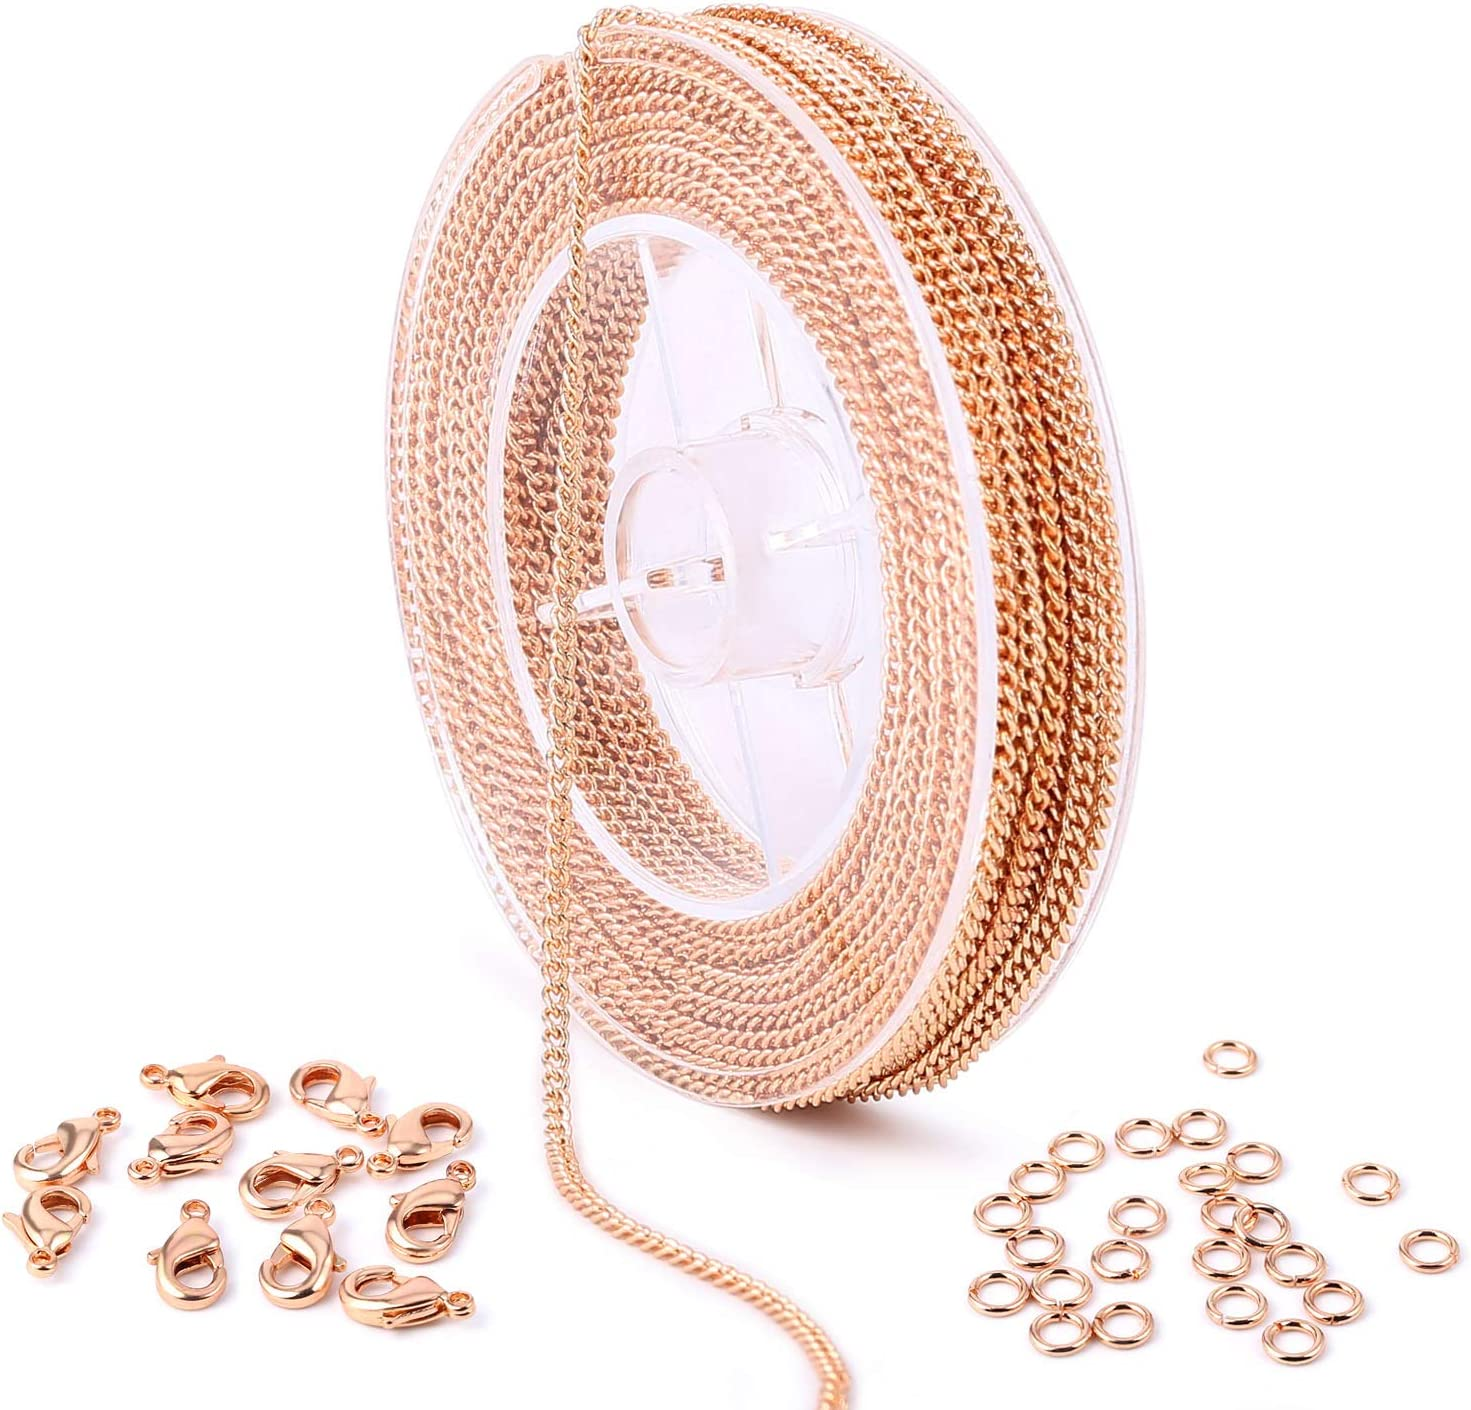 6 Meter Unfinished Bulk Chain Roll Chain Craft Necklace Jewelry Findings DIY